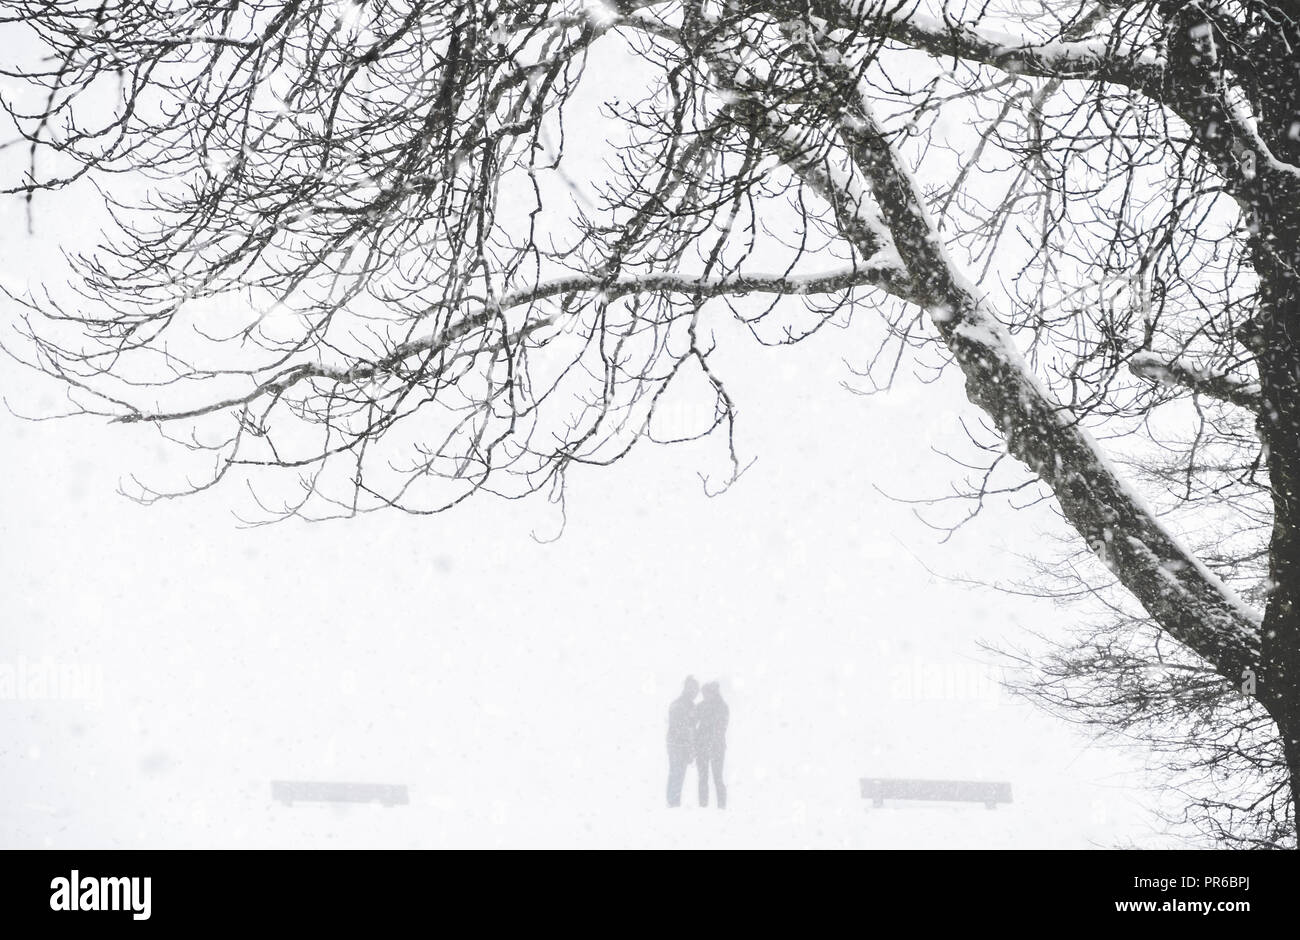 Harsh winter scenery with the silhouette of two people in a park ...